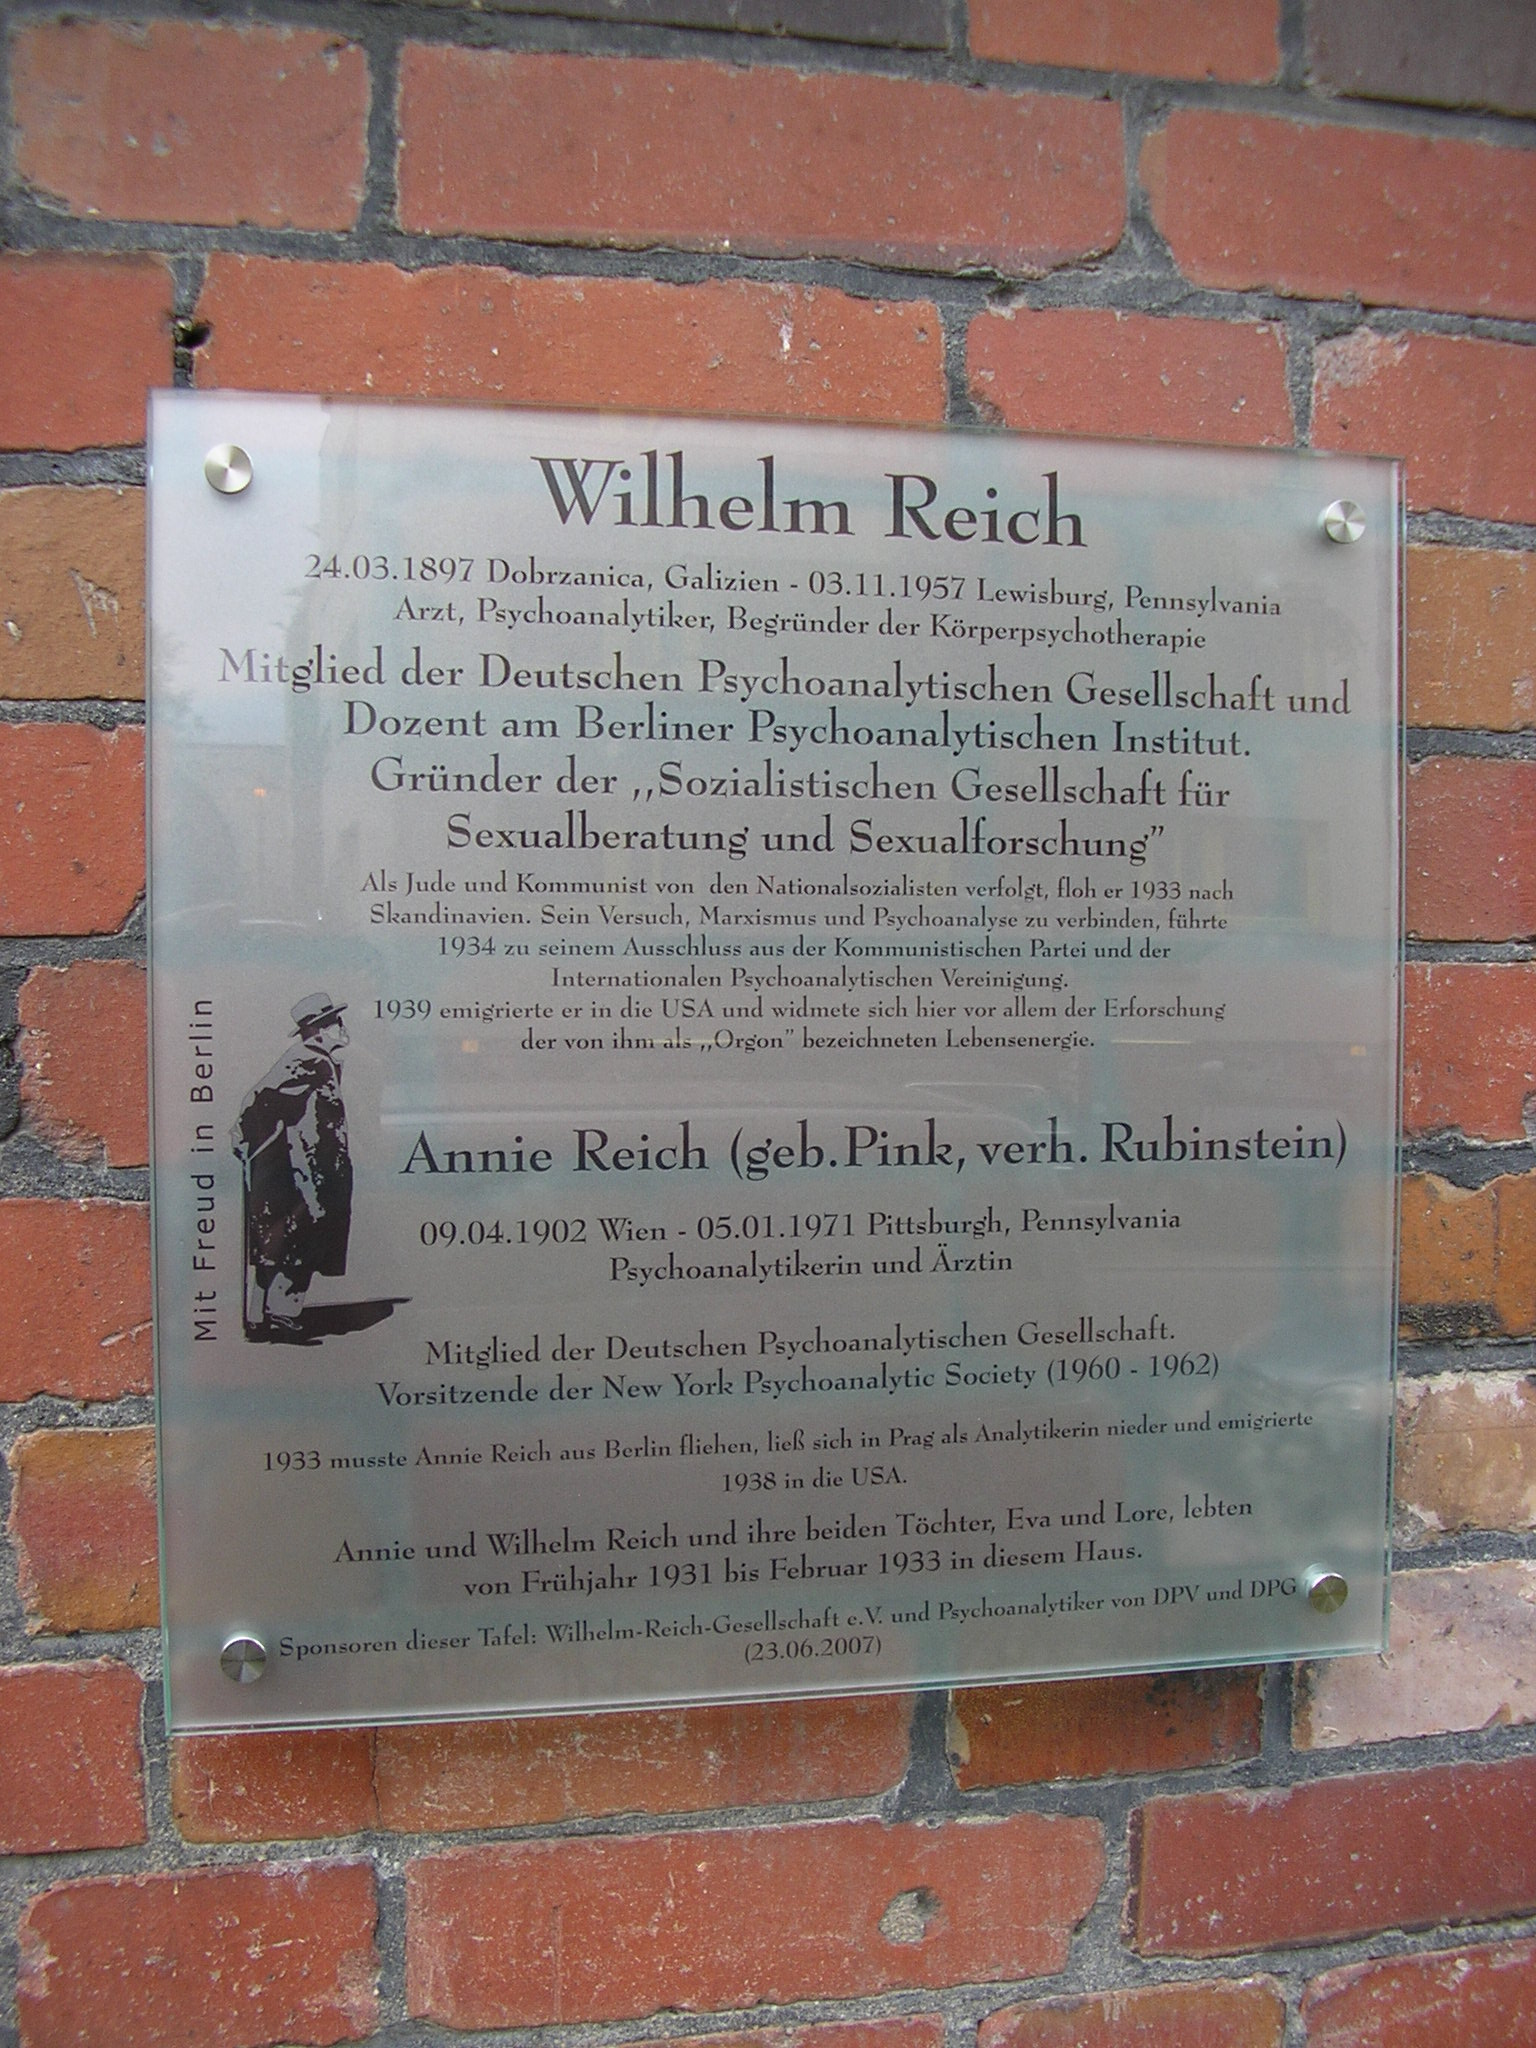 Shift to the right. Memorial plaque for Wilhelm Reich and Annie Reich